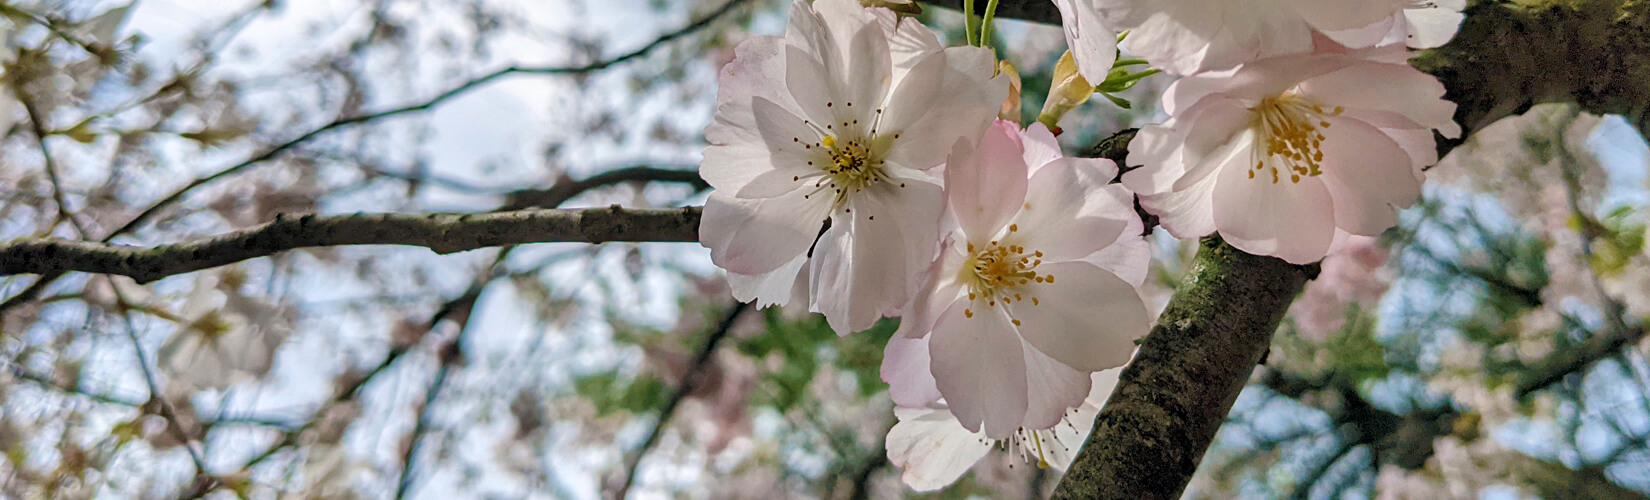 Niagara Cherry Blossoms: Top 7 Spots to Find These Beautiful Blooms :: I've Been Bit! Travel Blog